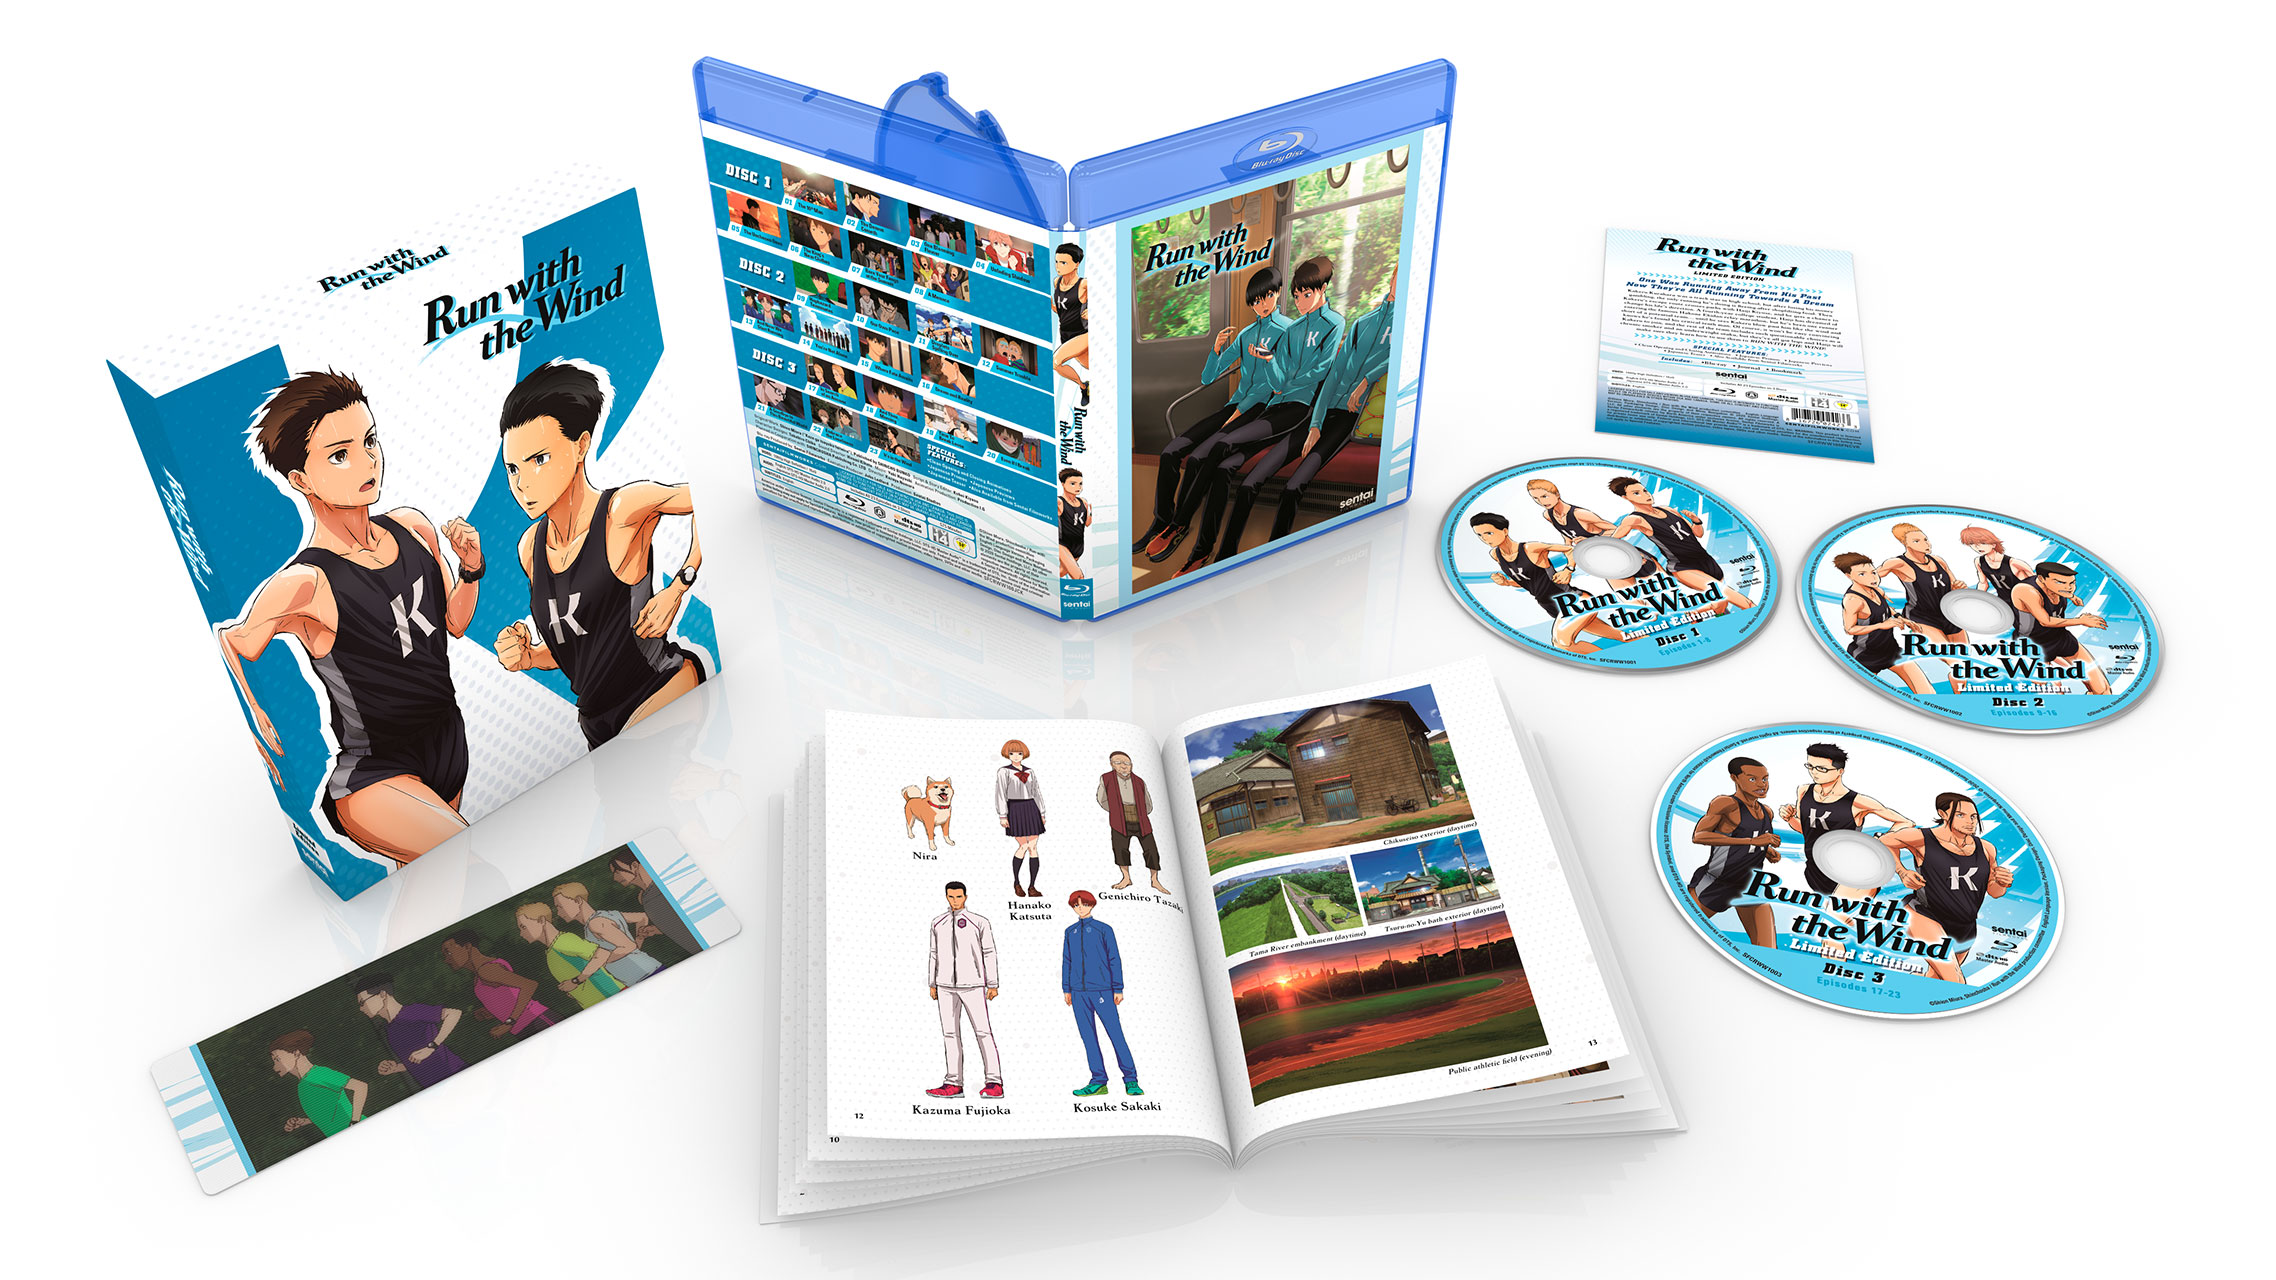 A picture of the Run With The Wind premium box set along with the Blu-ray, a booklet and linticular bookmark.